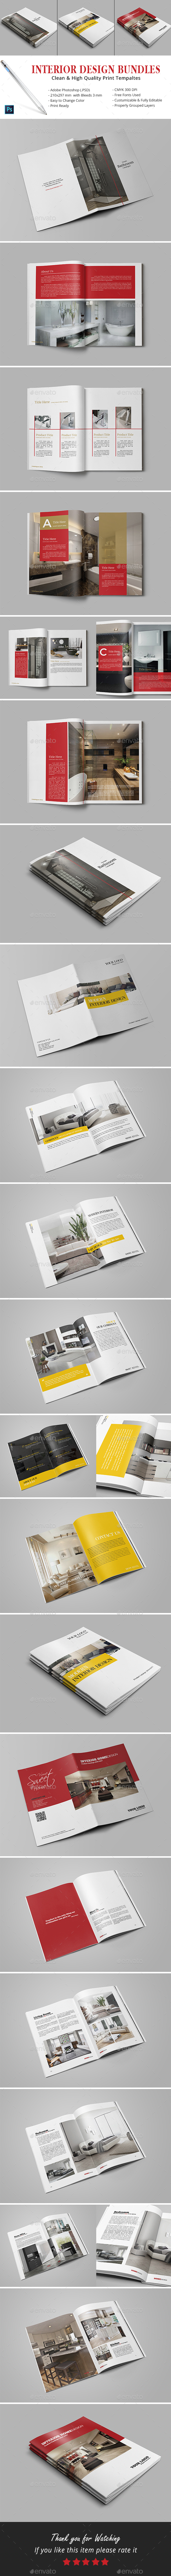 Interior Design Bundles - Catalogs Brochures